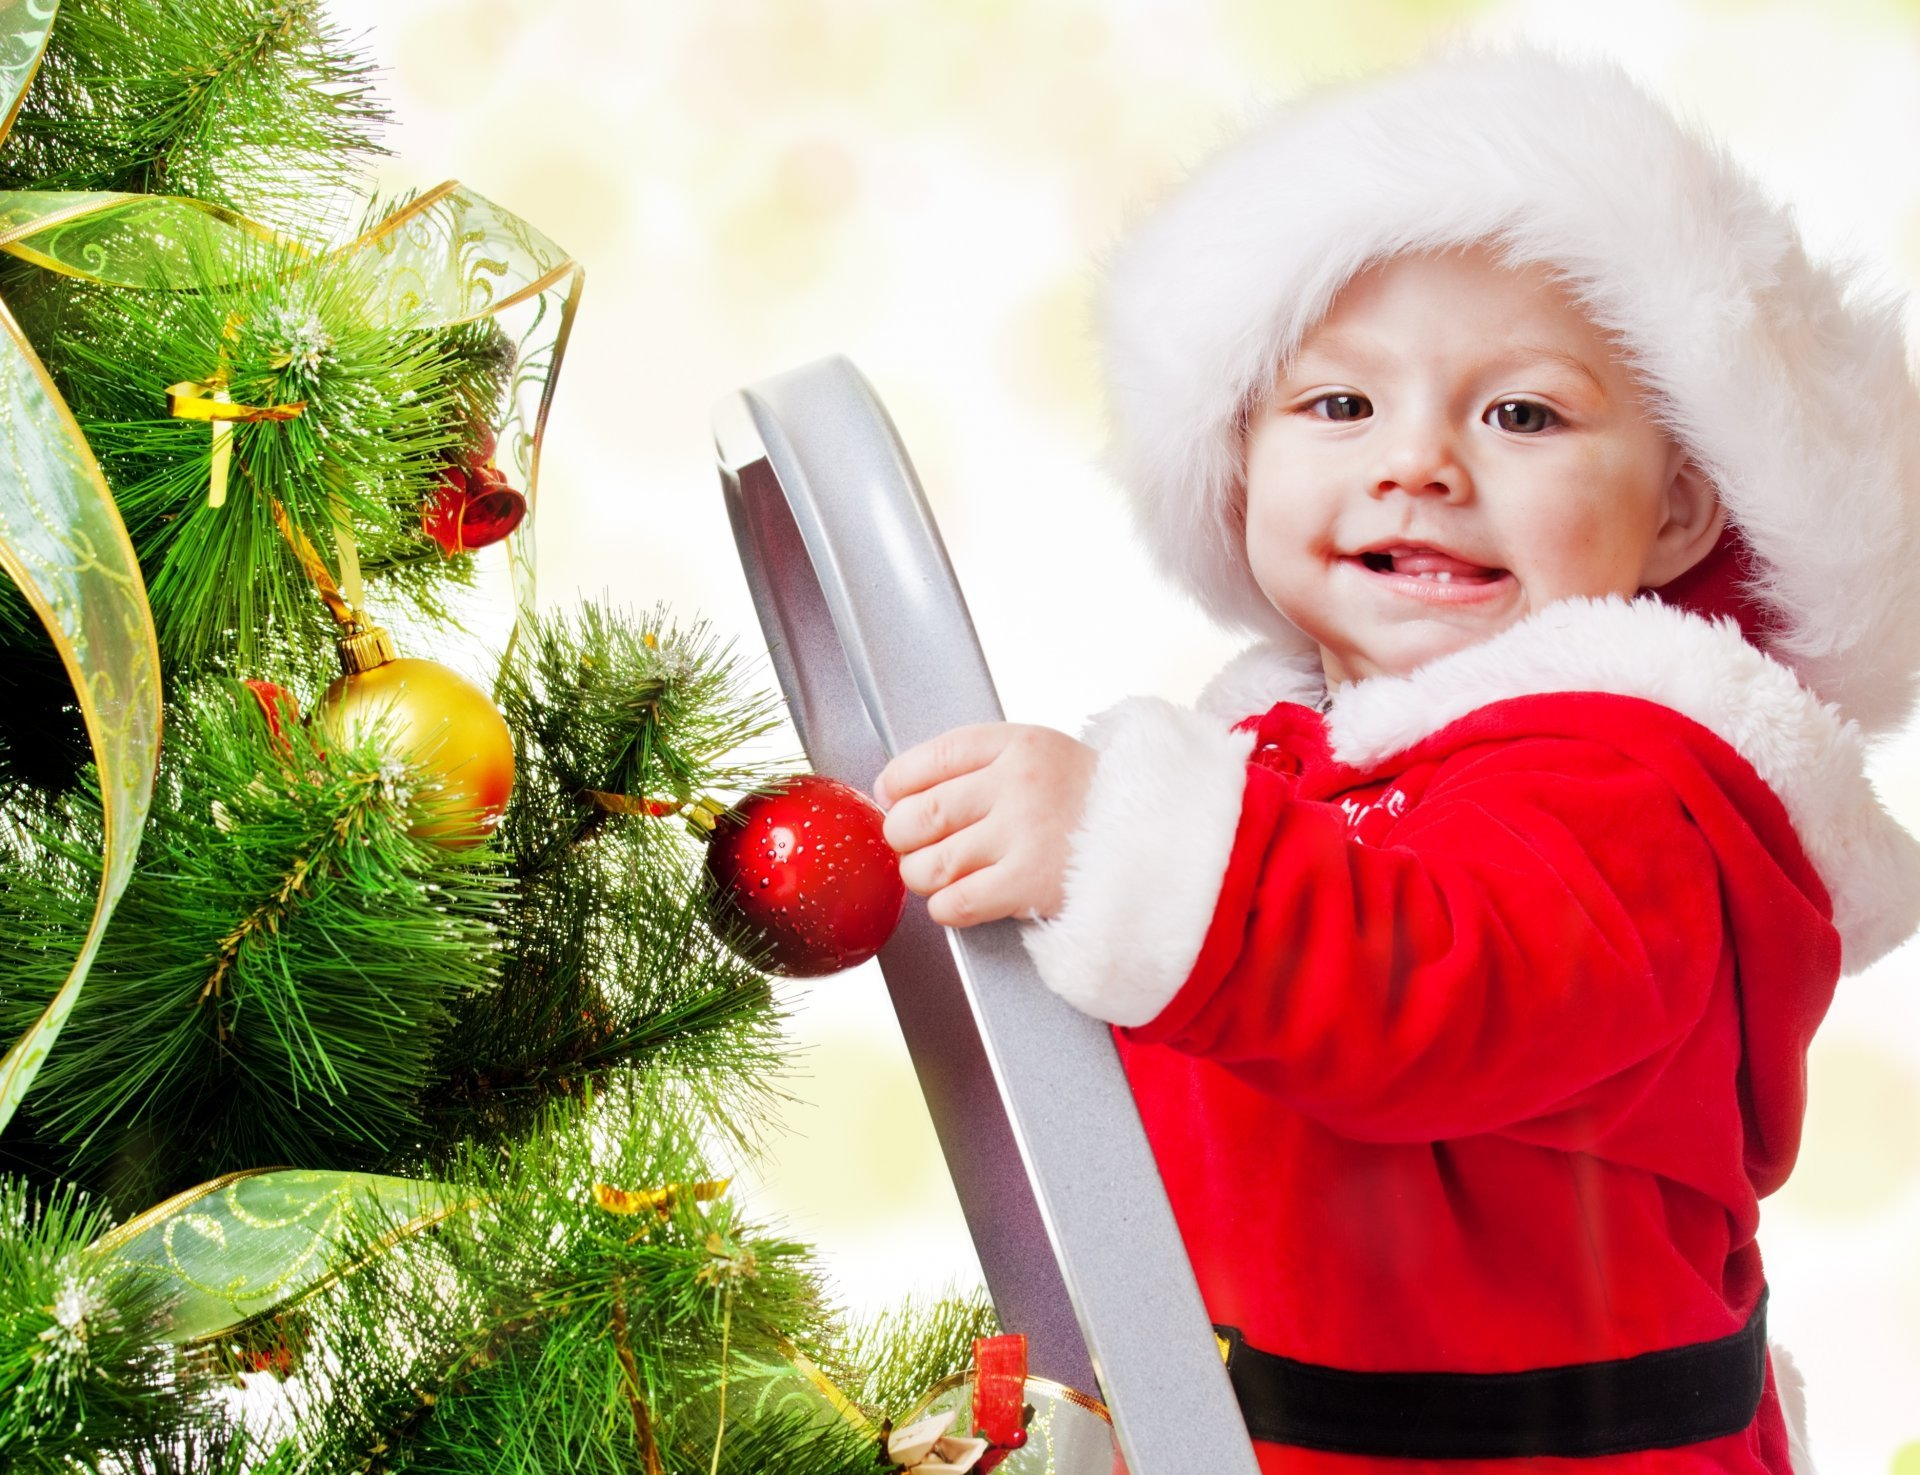 new-year-merry-christmas-adorable-funny-beautiful-kid-children-ladder-christmas-tree-new-year-merry-christmas-adorable-funny-beautiful-guy-children-christmas-tree-stairs